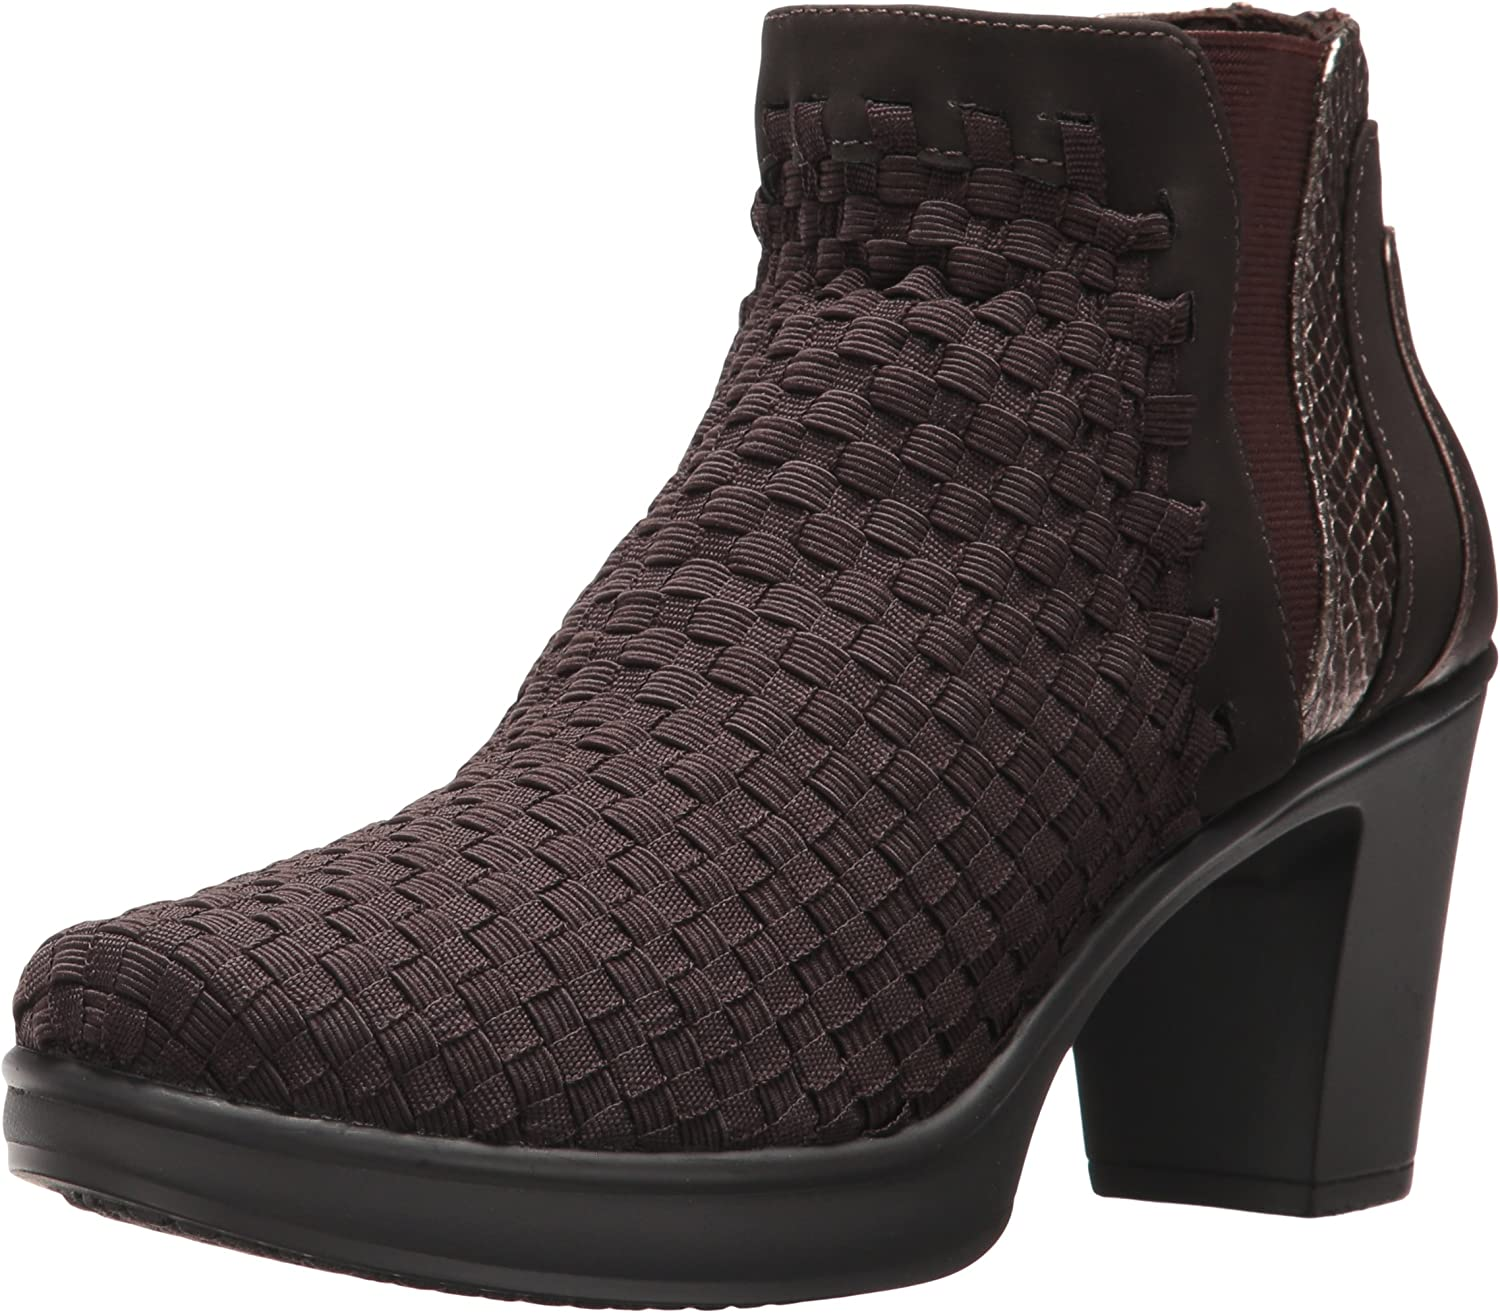 STEVEN by Steve Madden Womens NC-EXCIT Ankle Boot